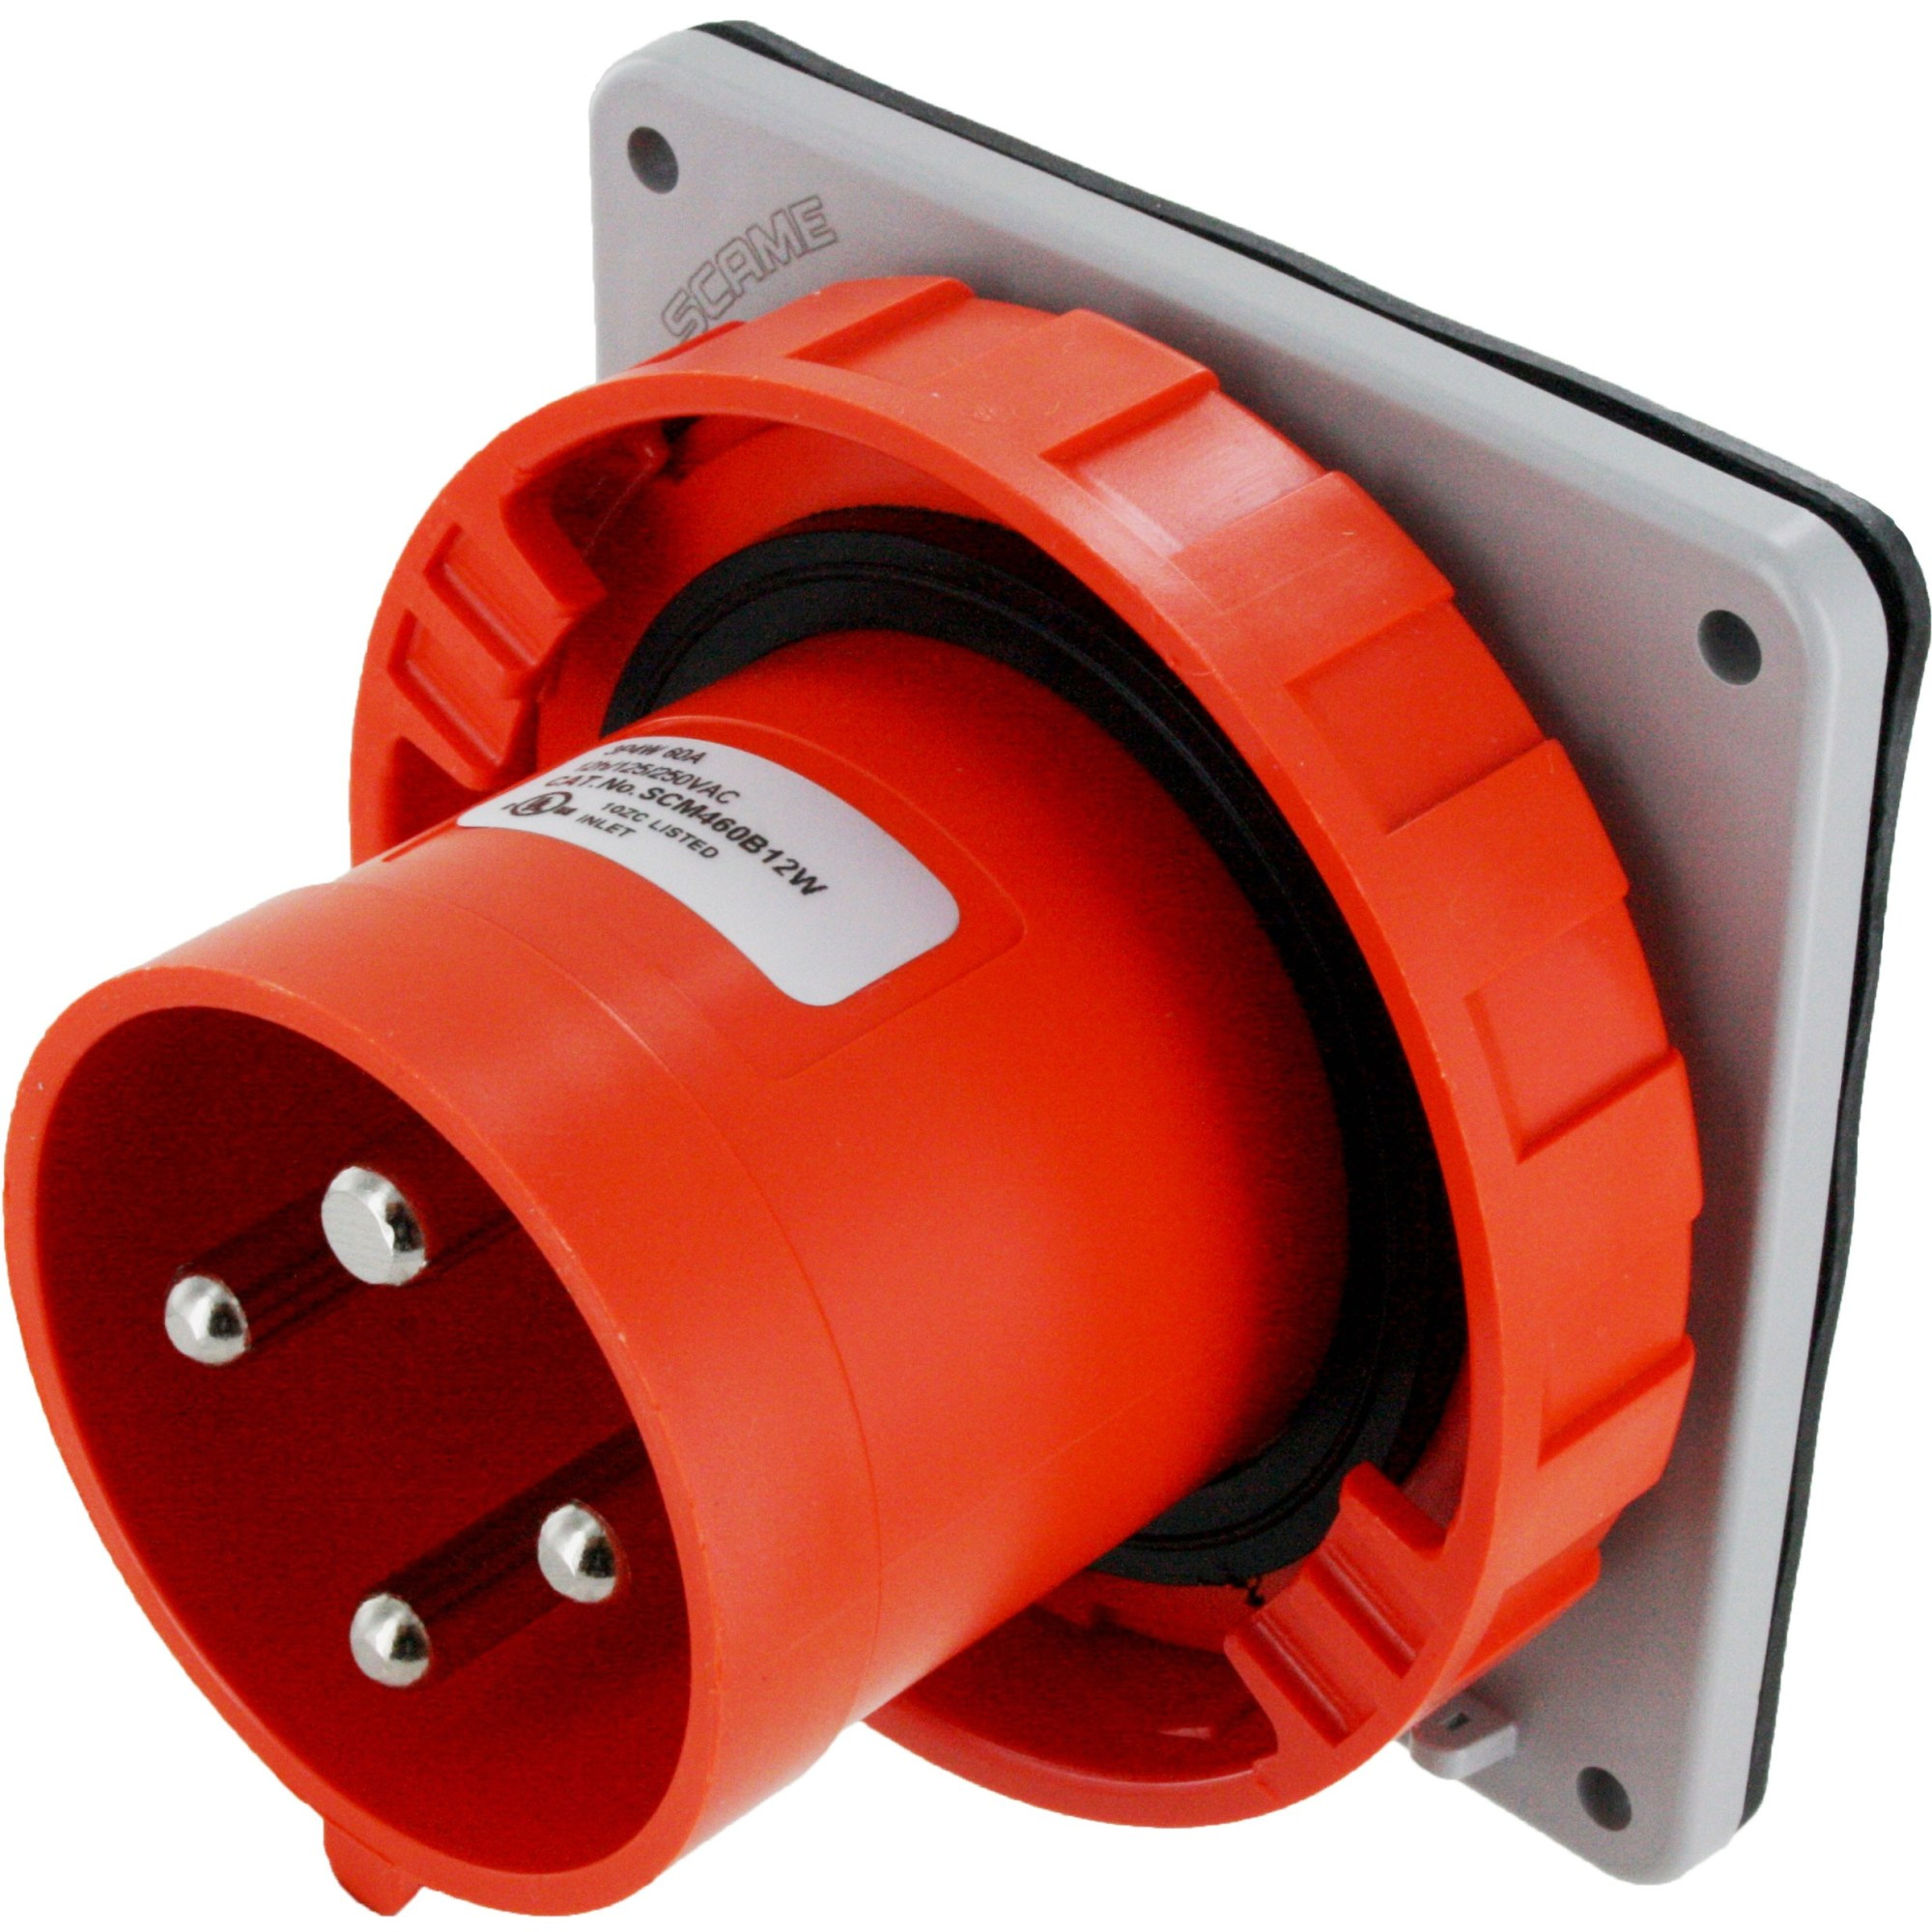 hight resolution of 460b12w pin and sleeve inlet 60 amp 3 pole 4 wire iec 60309